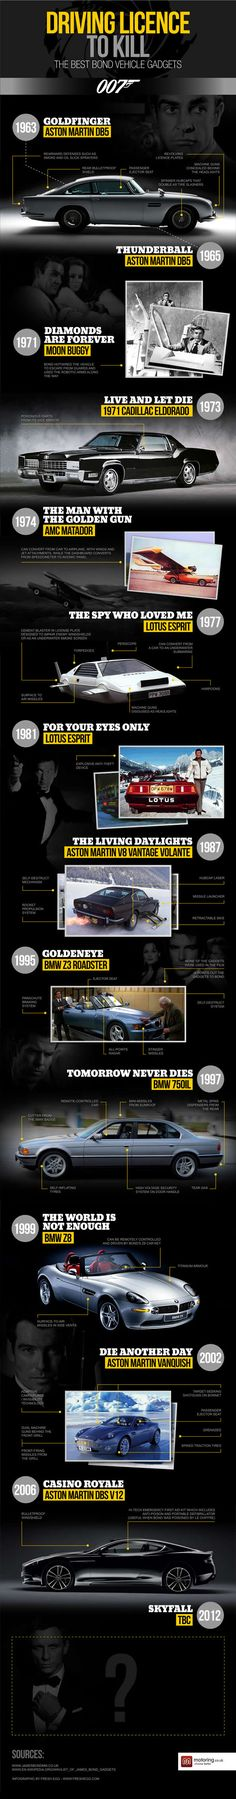 James Bond: Driving Licence to Kill Infographic | Fast Car Magazine